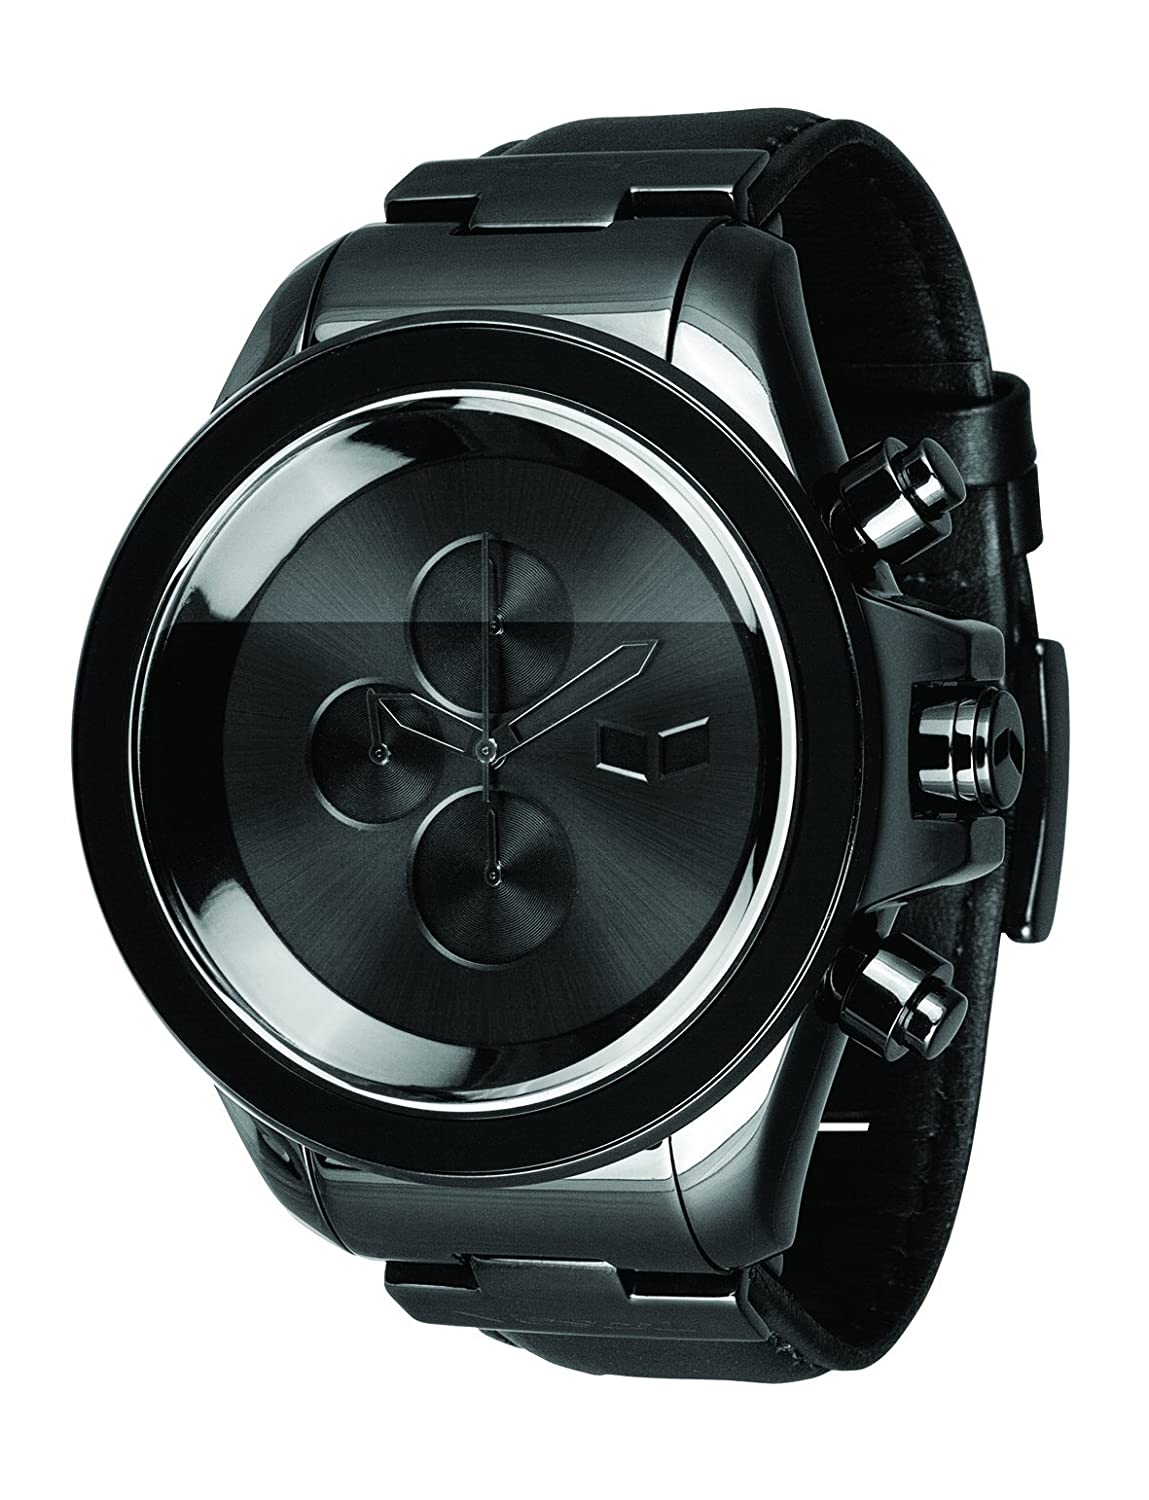 Amazon.com: Vestal Mens ZR3L002 ZR-3 Black Minimalist Chronograph Black Leather Watch: Watches